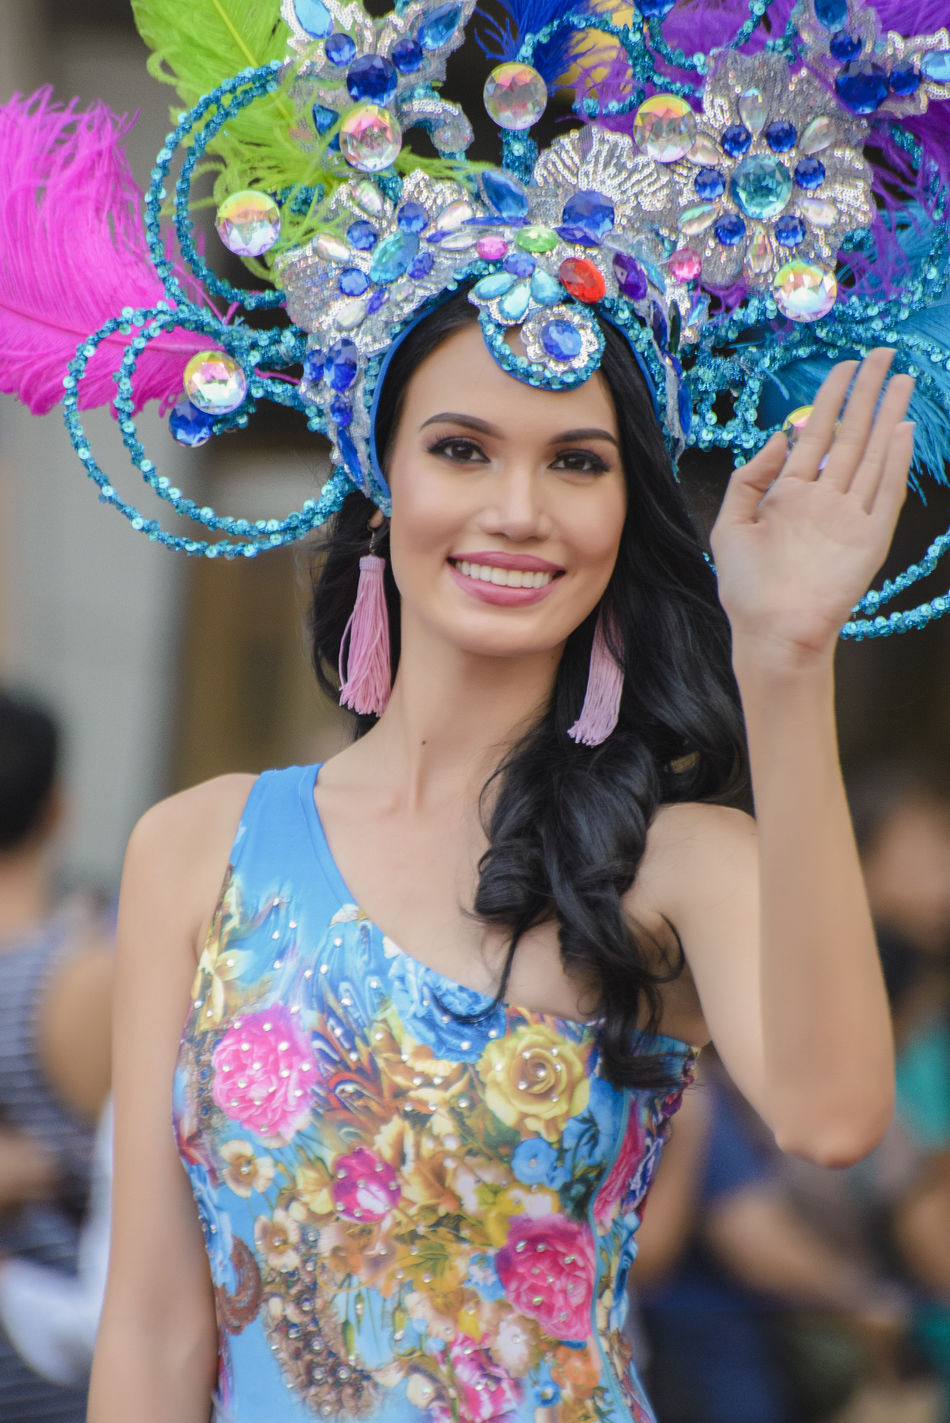 Bb. Pilipinas Beautiful Woman Beauty Queen Carnival Celebration Colorful Eyeem Philippines Filipina Filipina Beauty Florals Front View Happiness Headress Lifestyles Looking At Camera Multi Colored One Person Parade Philippines Portrait Real People Smiling Traditional Clothing Young Adult Young Women Art Is Everywhere